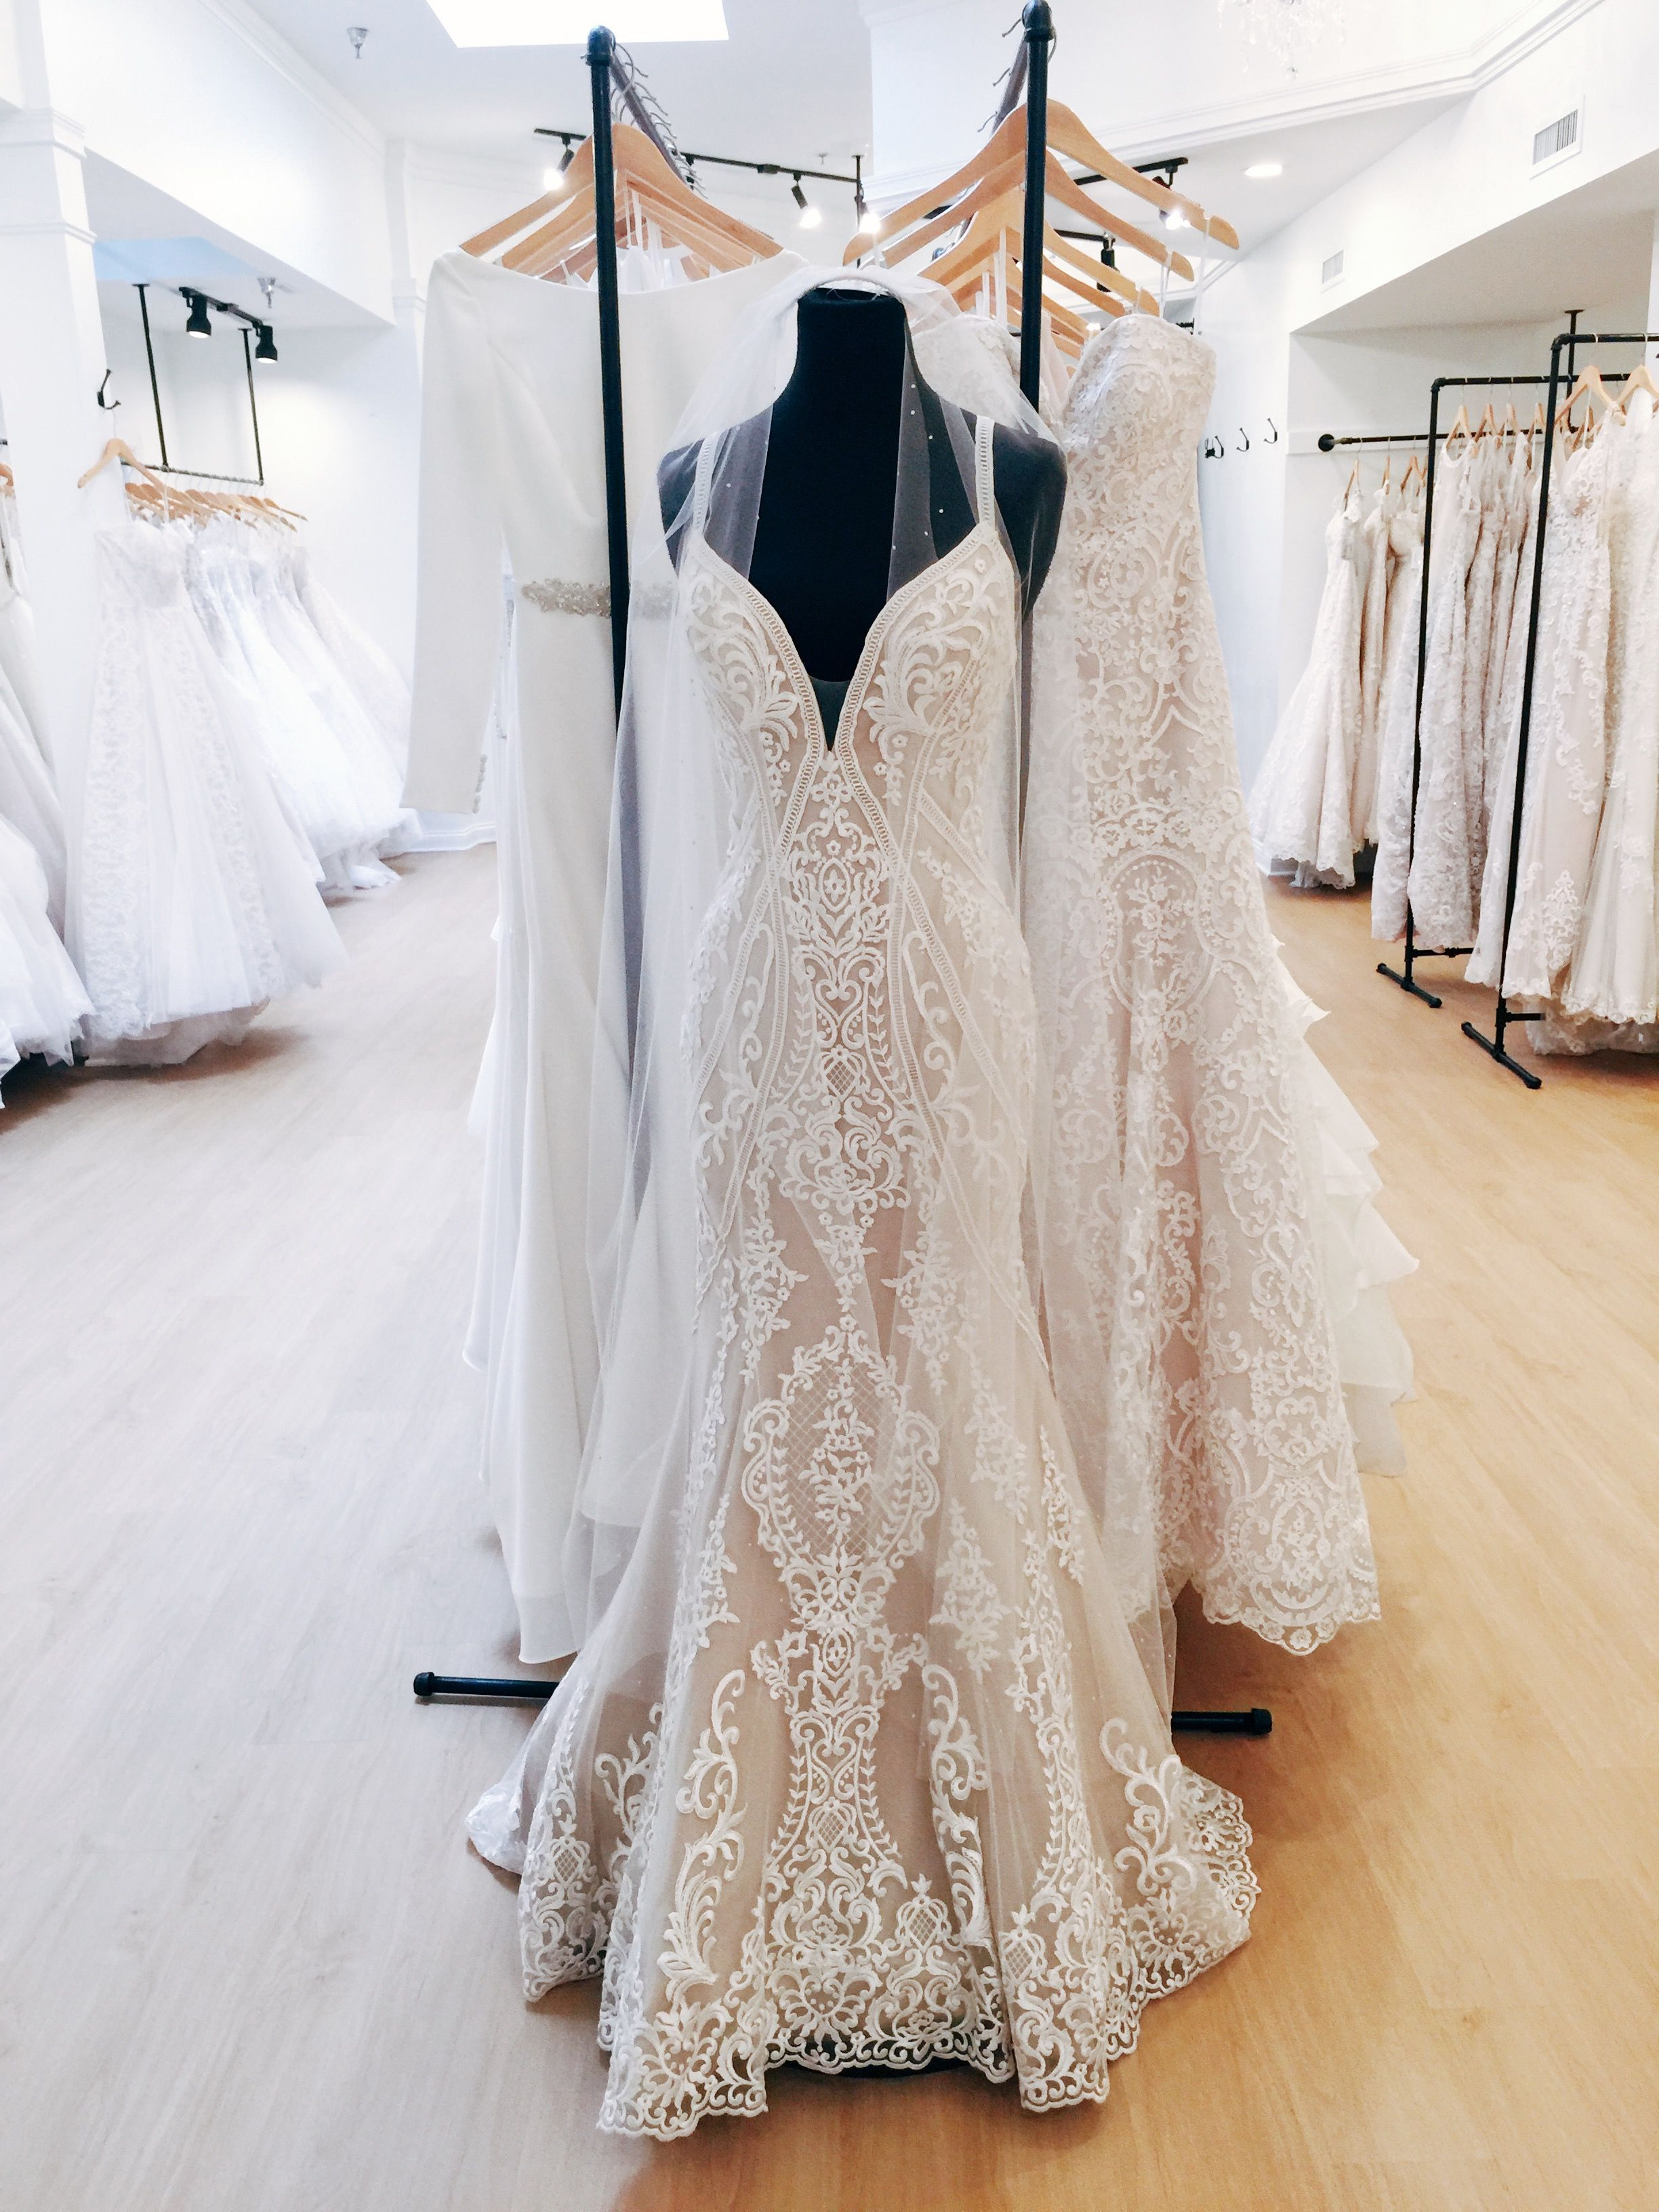 Fitted Lace Bridal Gown Kimora By Mori Lee At Rebecca S Wedding Boutique In Louisville Ky Wedding Dresses Wedding Dress Blog Couture Bridal Gowns,Wedding Dresses For Sale At China Mall Johannesburg